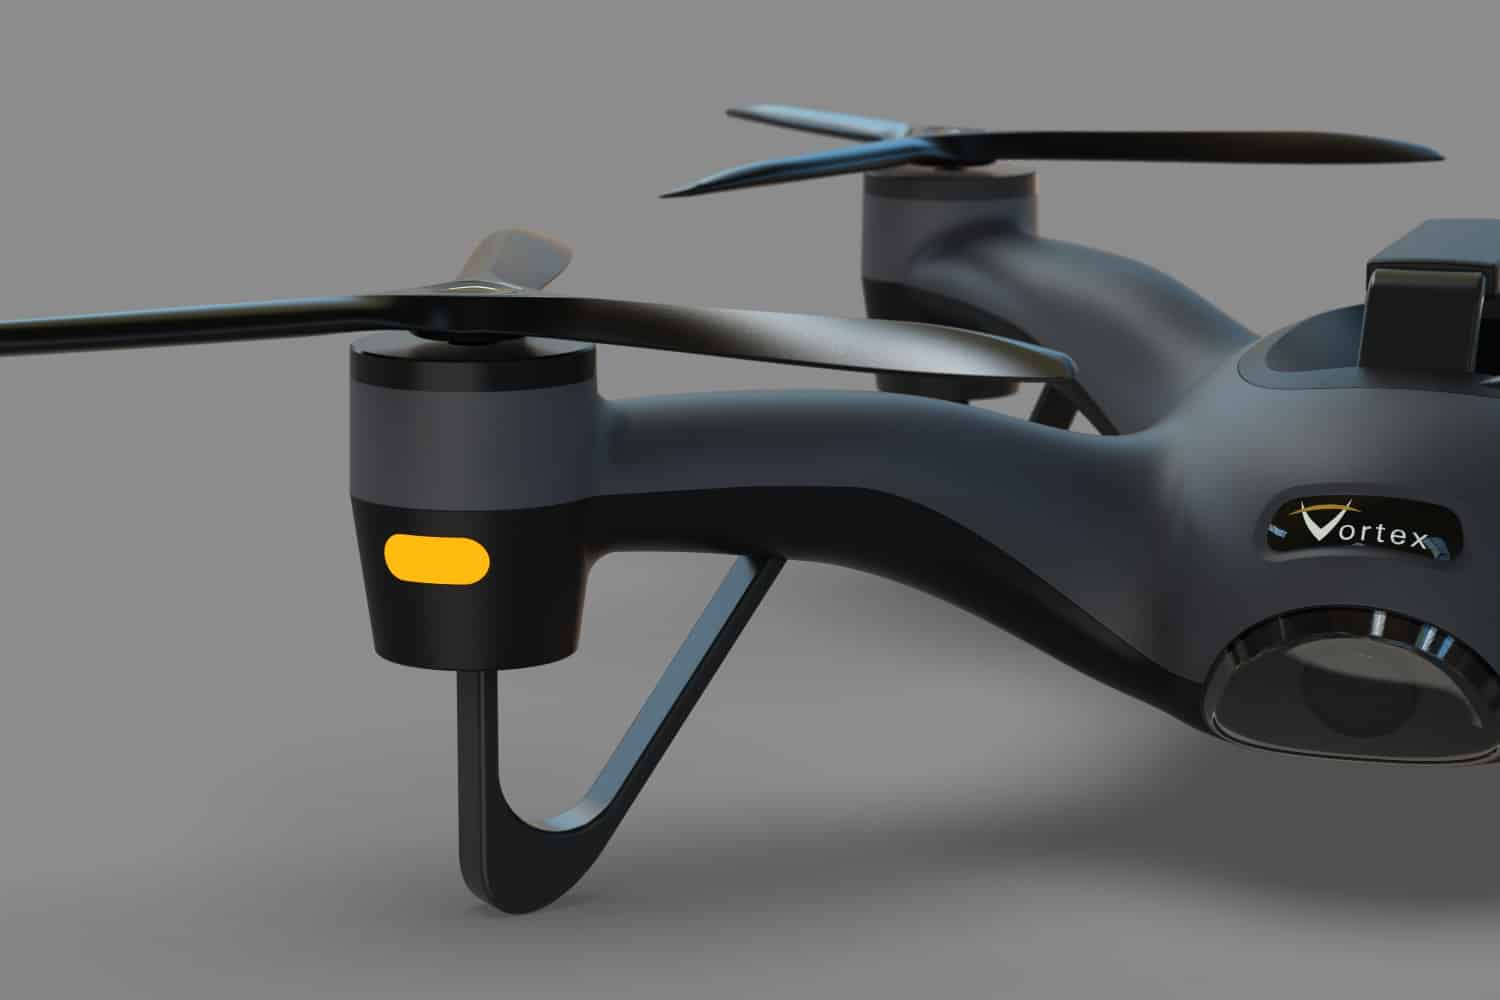 CAD model and rendering of new drone design